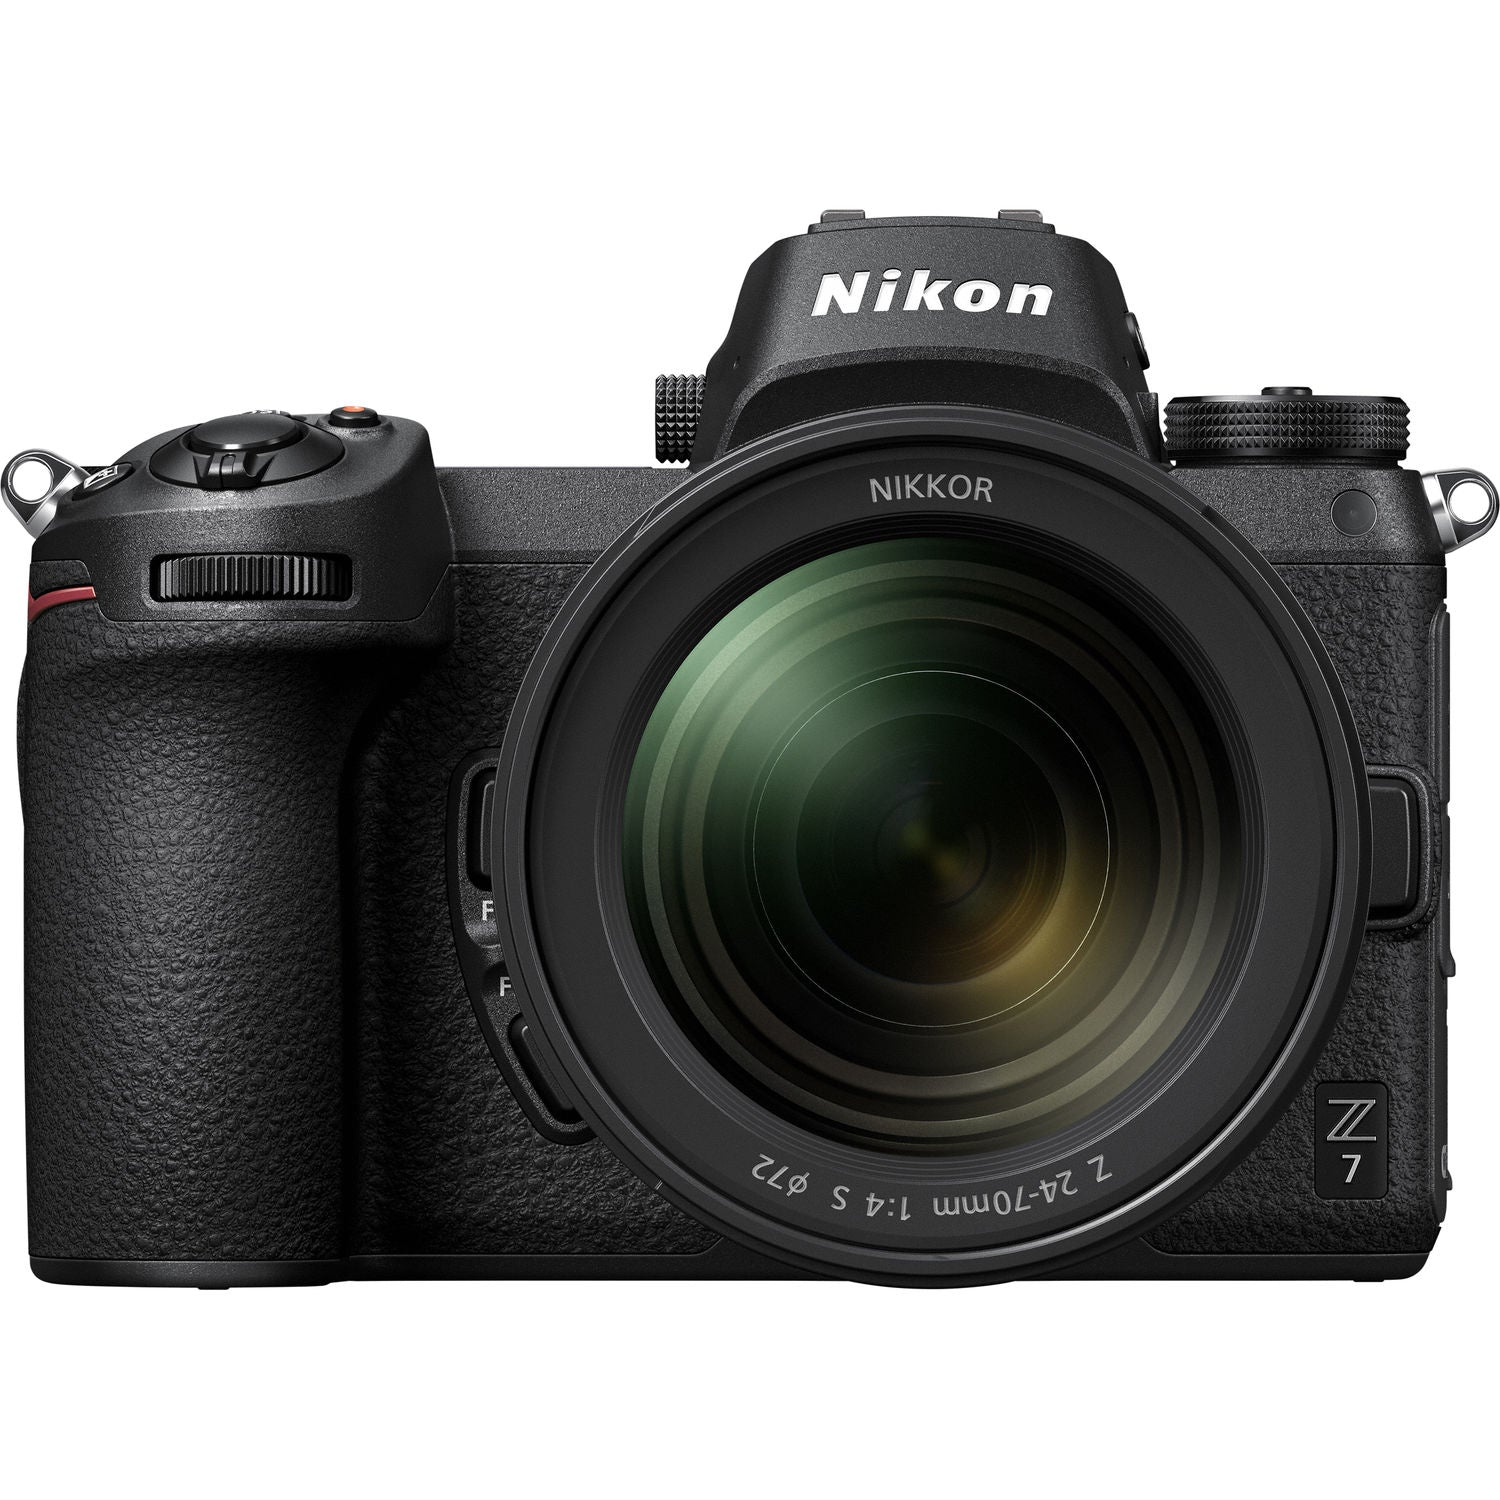 Nikon Z 7 Mirrorless Digital Camera with 24-70mm Lens and FTZ Adapter Kit